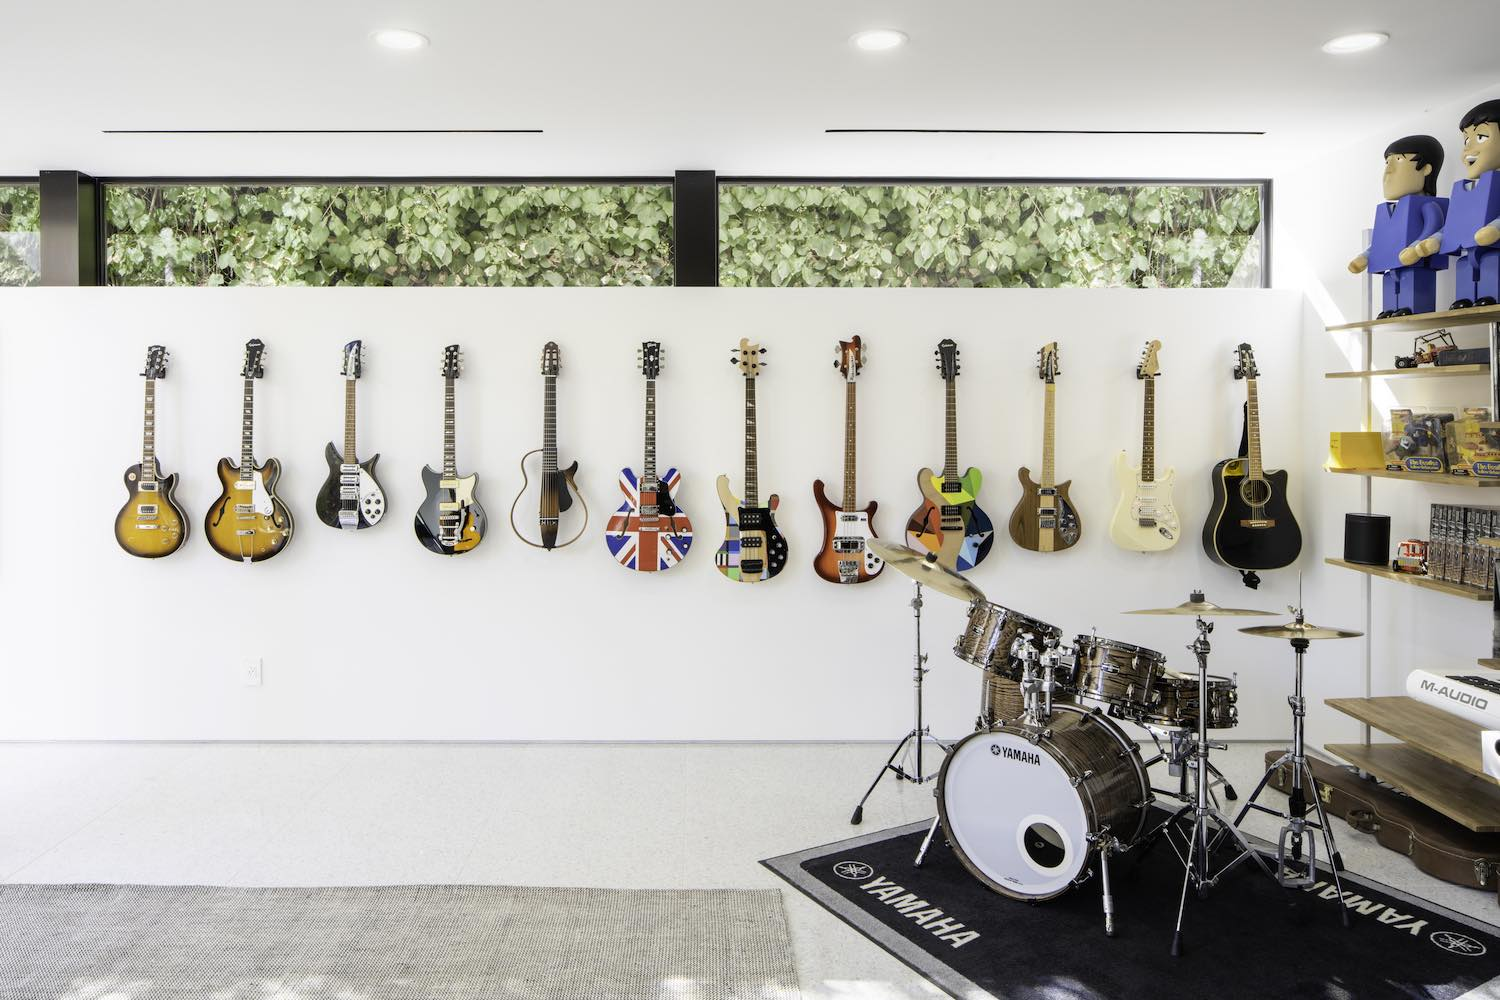 electric guitars hanged on the wall